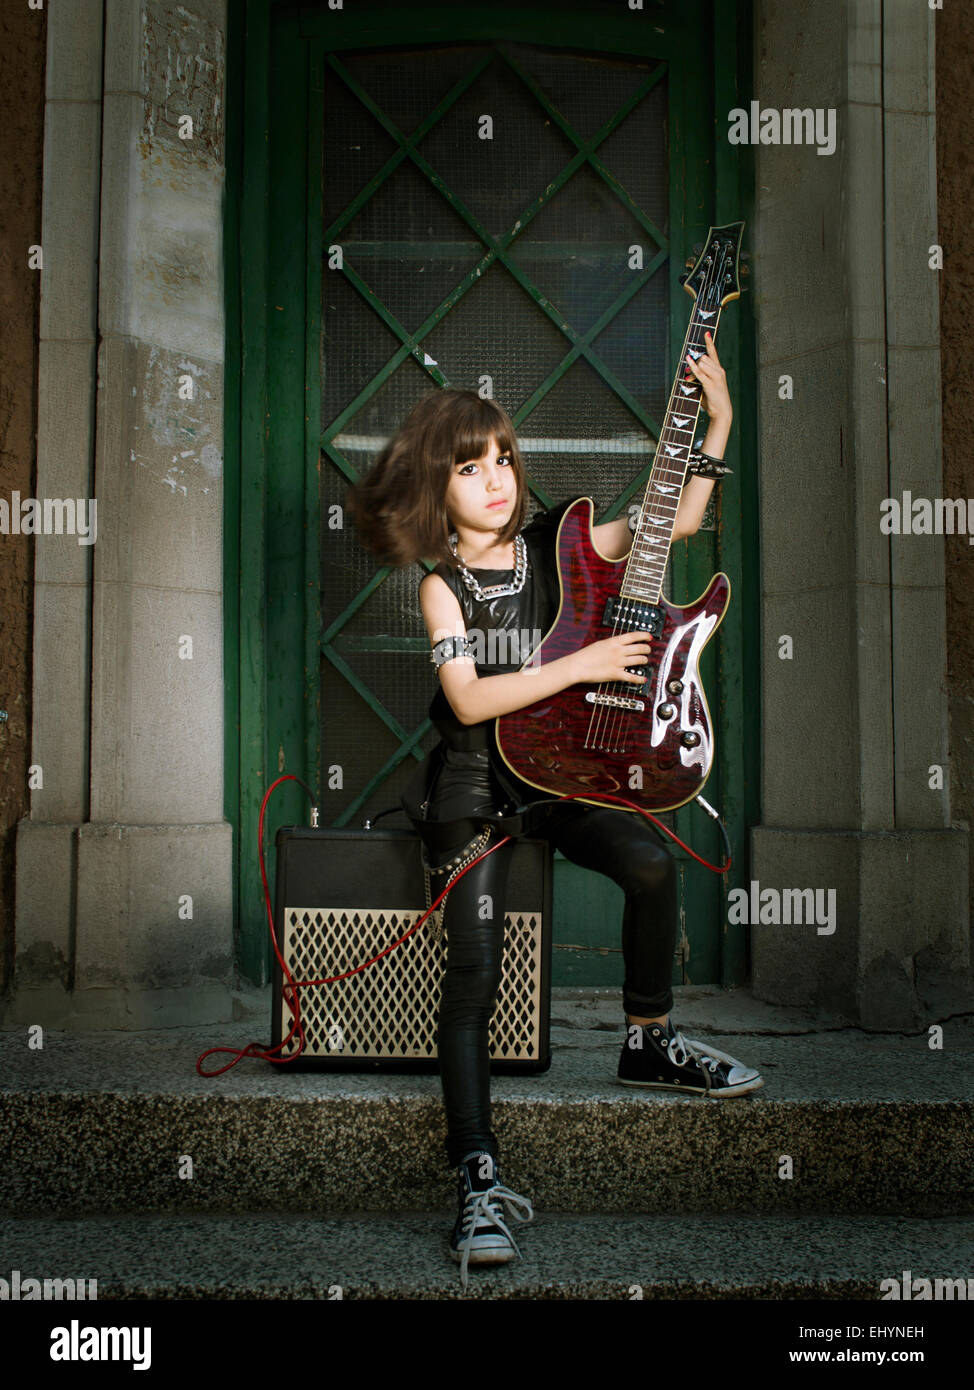 Girl dressed as a rock star playing the guitar - Stock Image